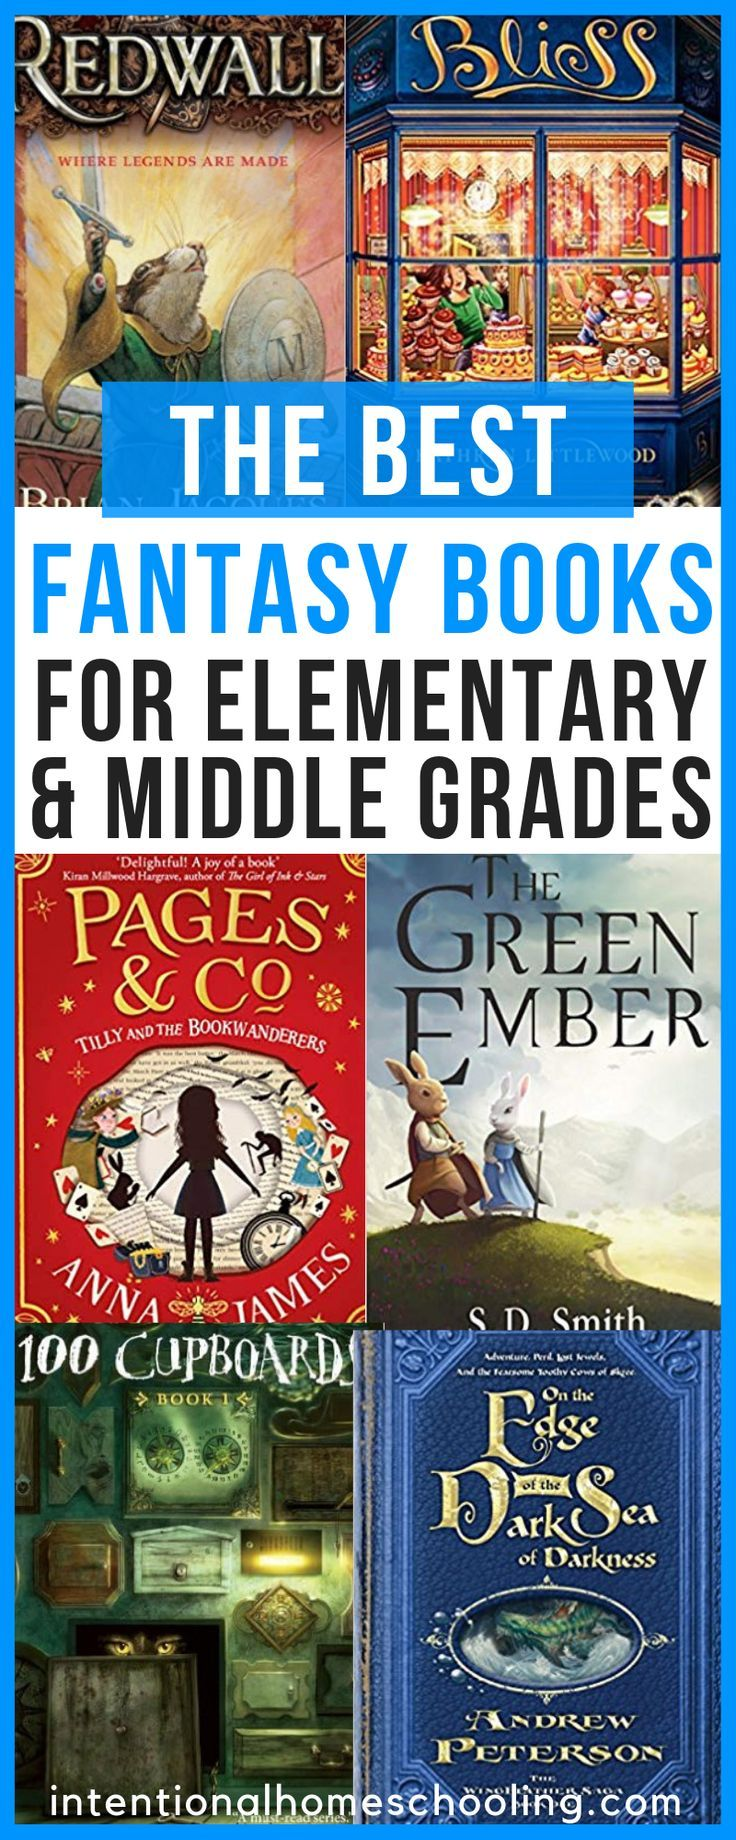 Fantasy Book Recommendations For Elementary and Middle Grades is part of Fantasy books, Elementary books, Book recommendations, Middle grade fantasy, Middle grade books, Books - I was not a fantasy reader as a child and boy, do I ever feel like I missed out! I wasn't even a fantasy reader as an adult until recently! I spent the